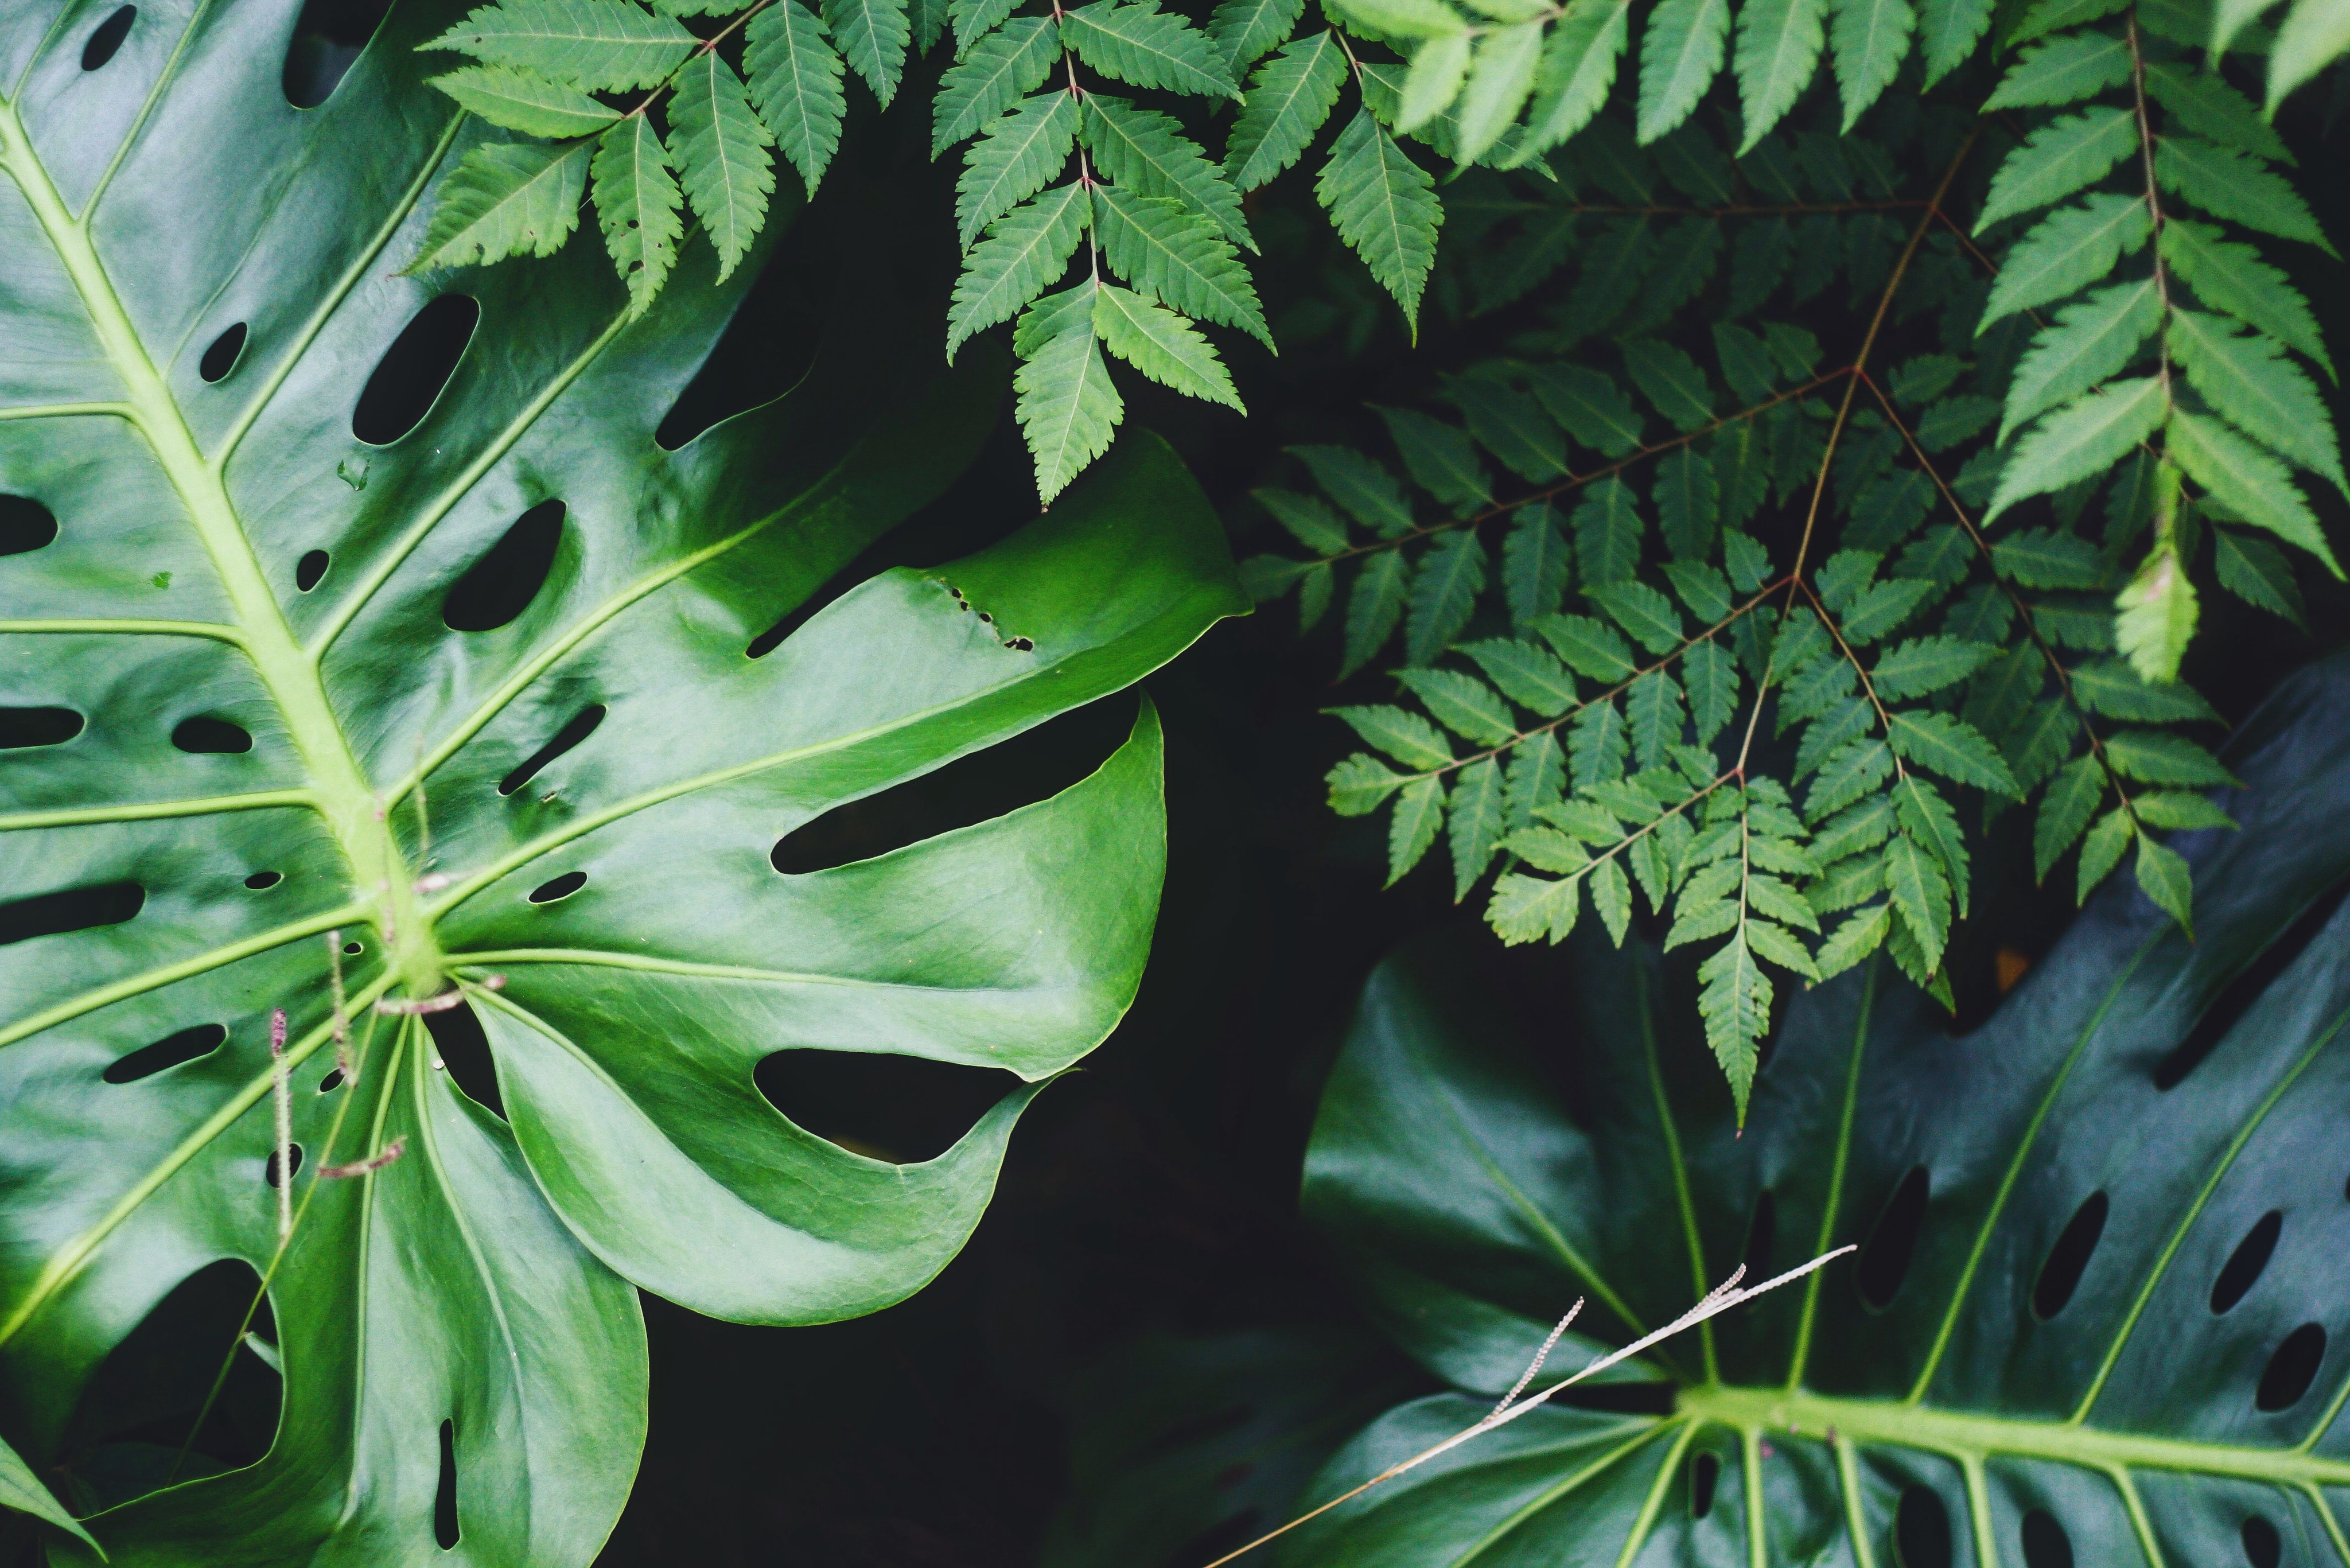 jackie dilorenzo RyLsRzy9jIA unsplash - Why Are Plants So Important In Your Life